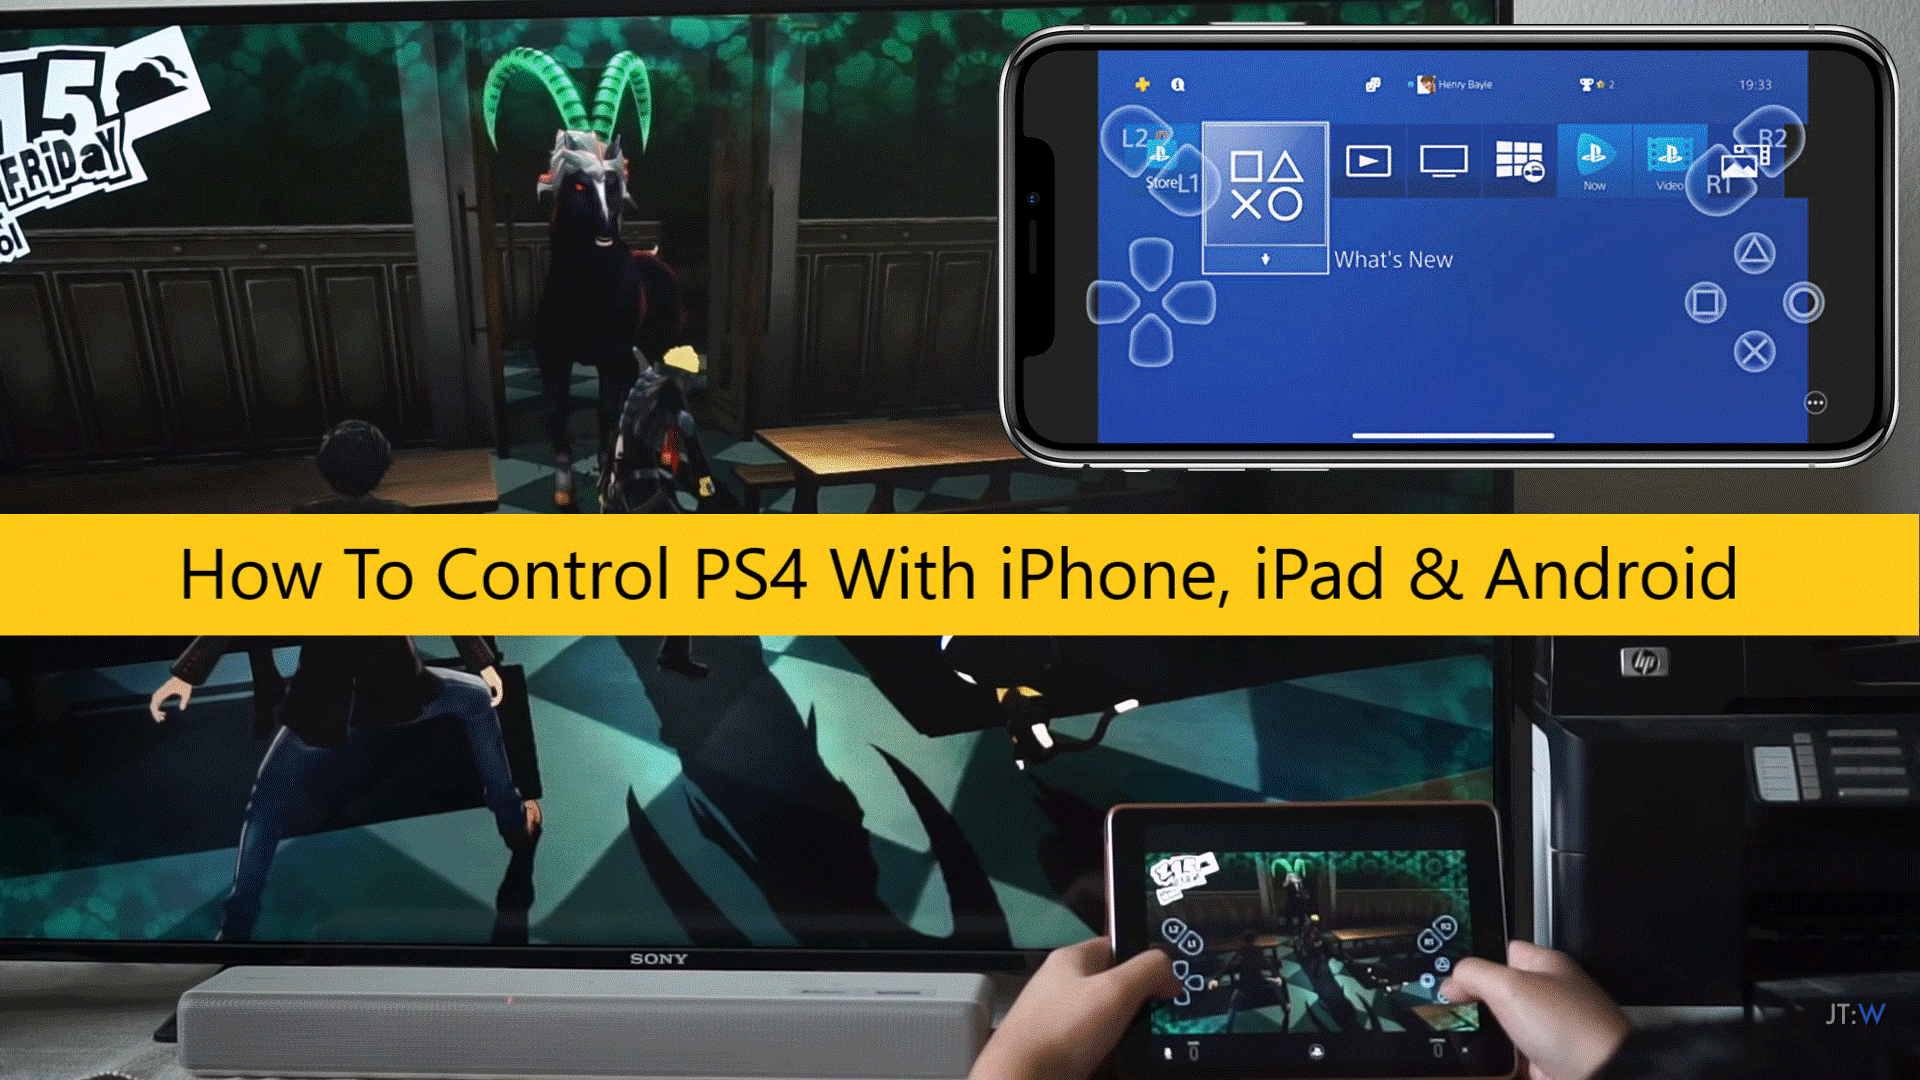 How To Control PS4 With iPhone